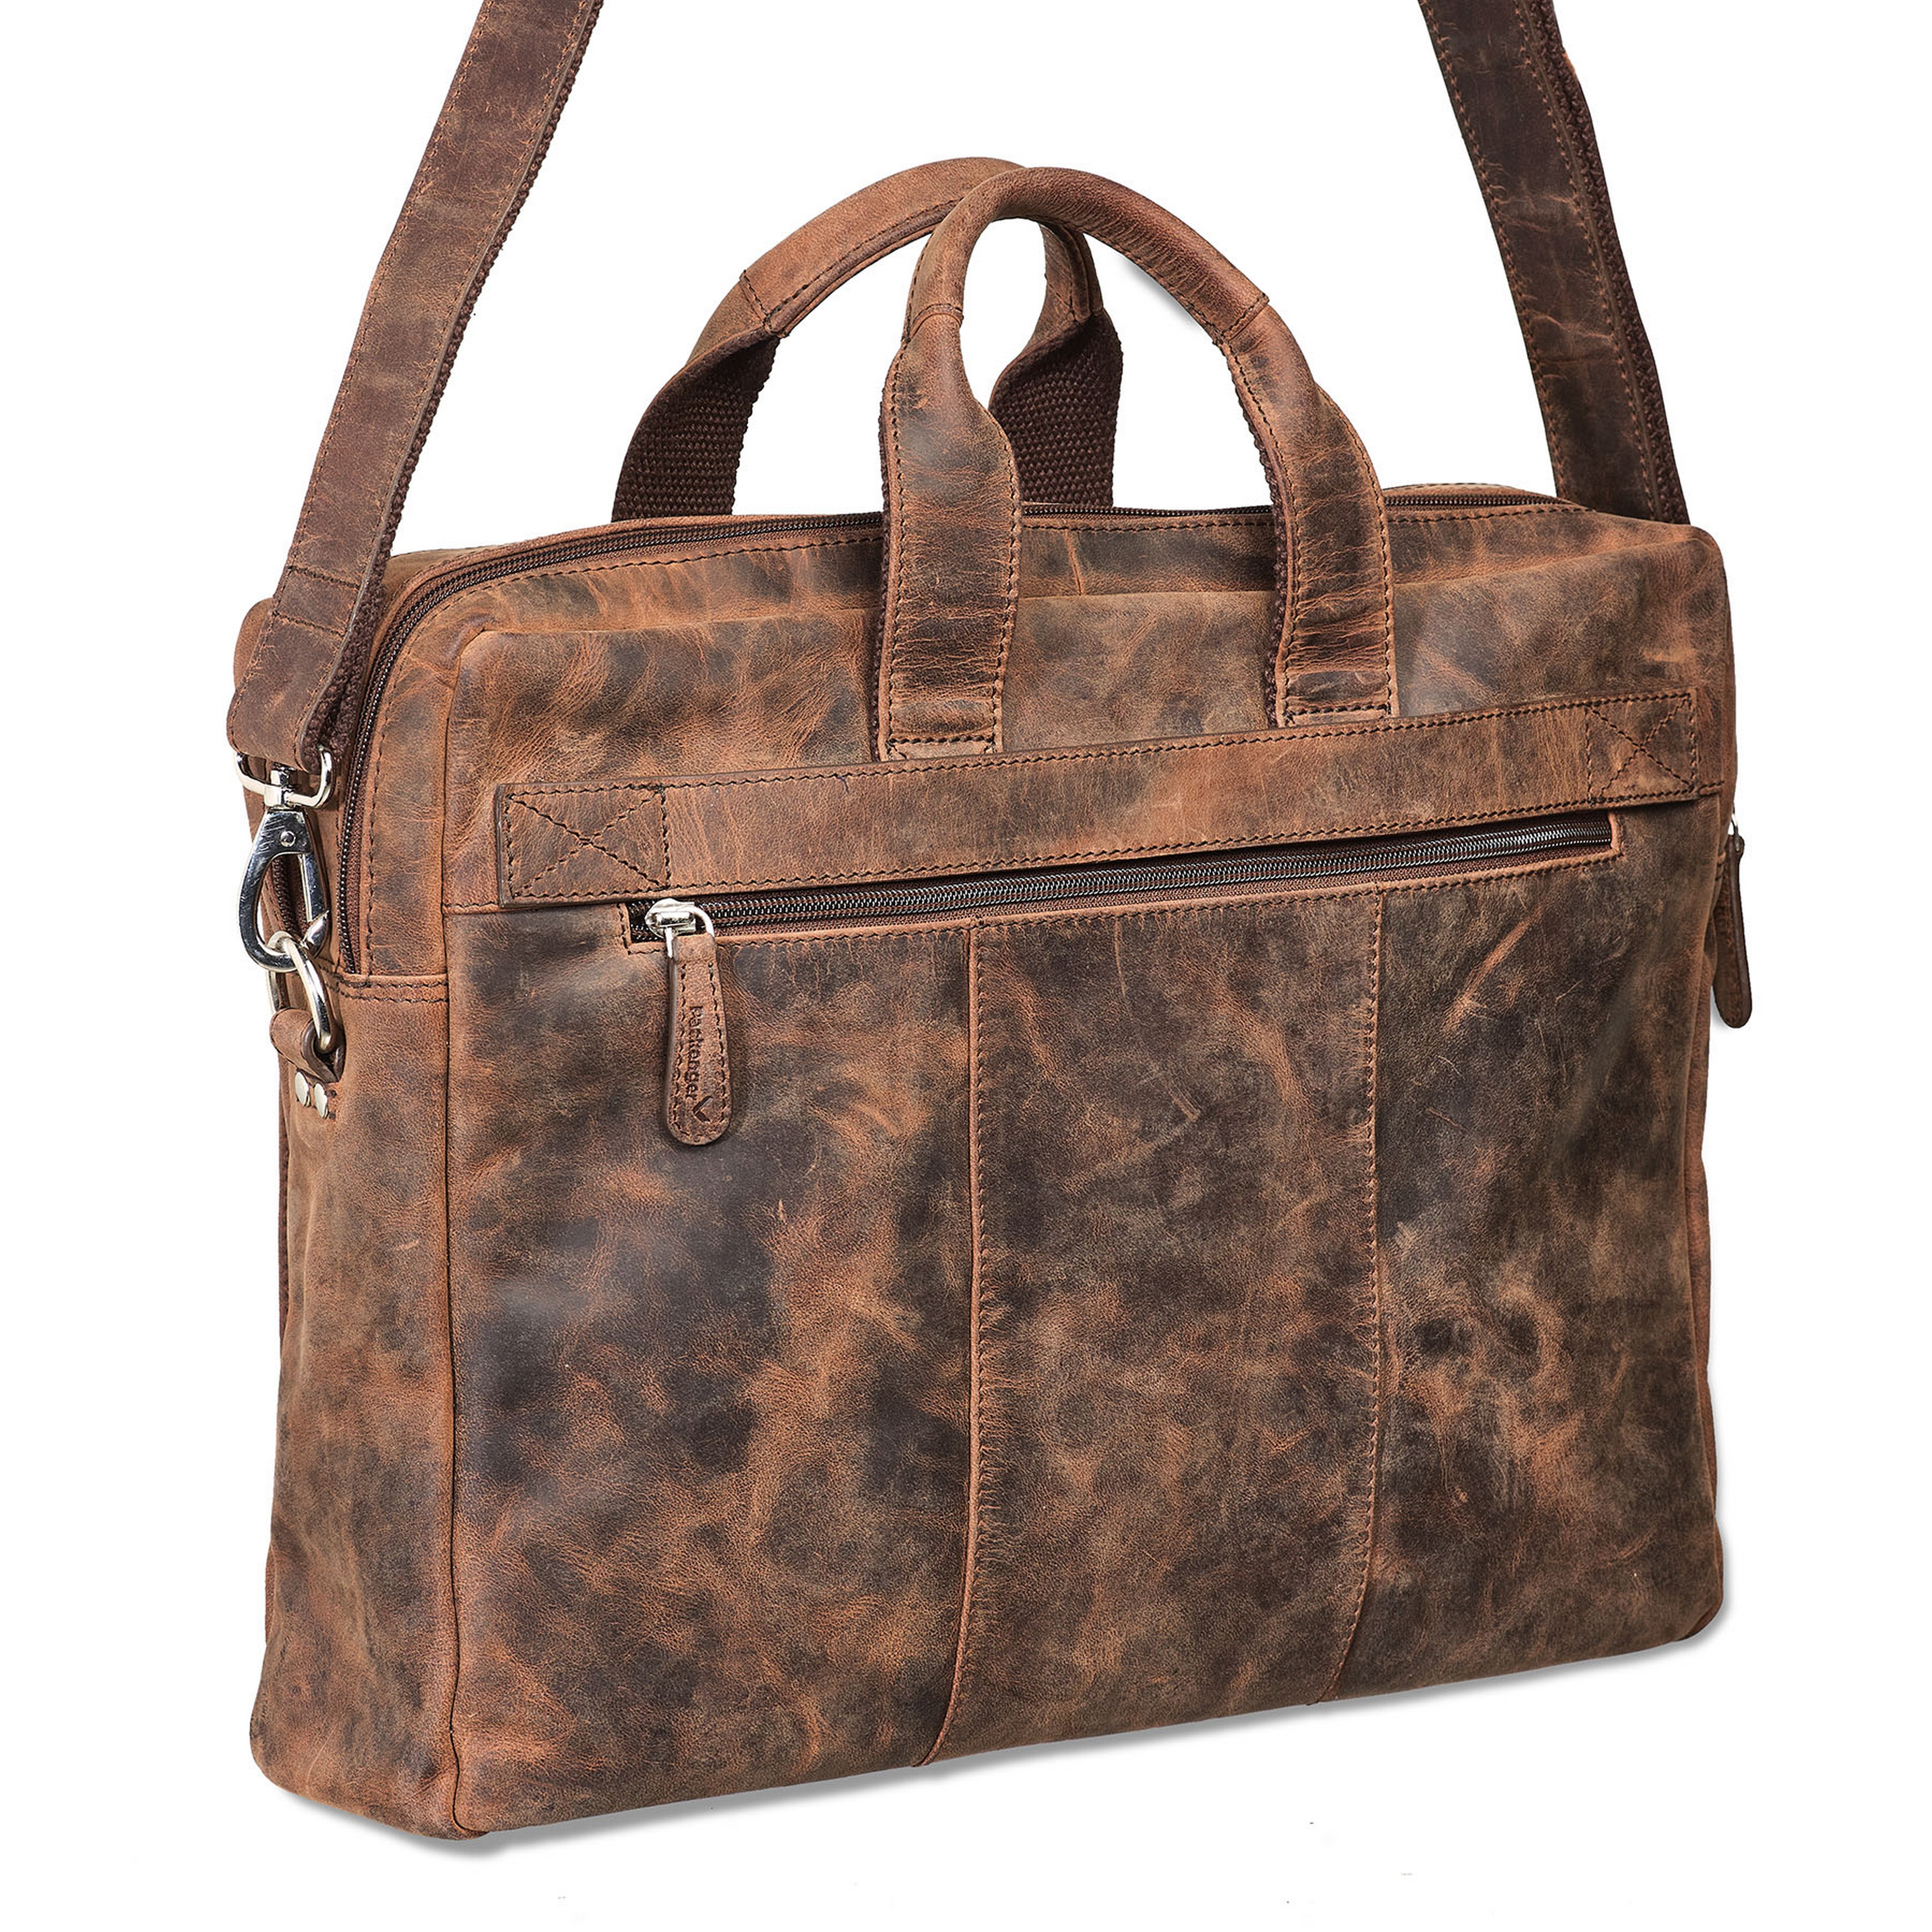 Packenger Messenger Bag ODIN Ledertasche in Vintage Braun